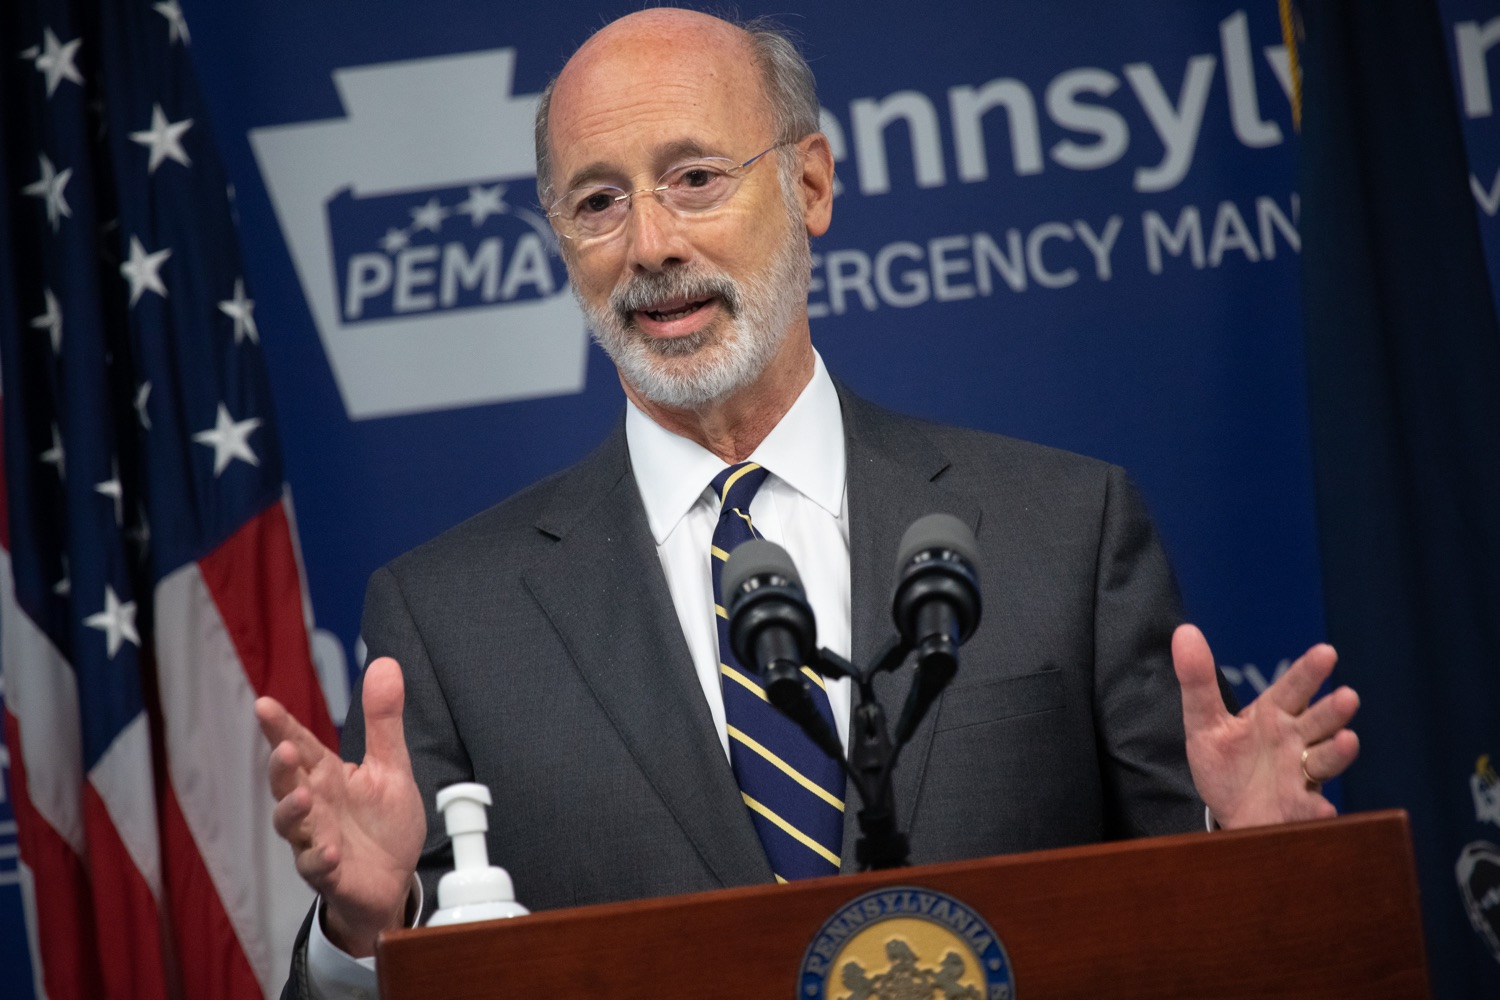 """<a href=""""https://filesource.wostreaming.net/commonwealthofpa/photo/18165_GOV_covid_mitigation_dz_06.jpg"""" target=""""_blank"""">⇣Download Photo<br></a>Pennsylvania Governor Tom Wolf speaking with the press.  Governor Tom Wolf and Sec. of Health Dr. Rachel Levine today signed new orders for targeted mitigation efforts in response to the recent rise in COVID cases, primarily in southwest Pennsylvania, but also in other counties in the state, influencing the decision for statewide mitigation efforts for bars and restaurants, gatherings and telework. The new orders take effect at 12:01 a.m., Thursday, July 16, 2020.  Harrisburg, - July 15, 2020"""